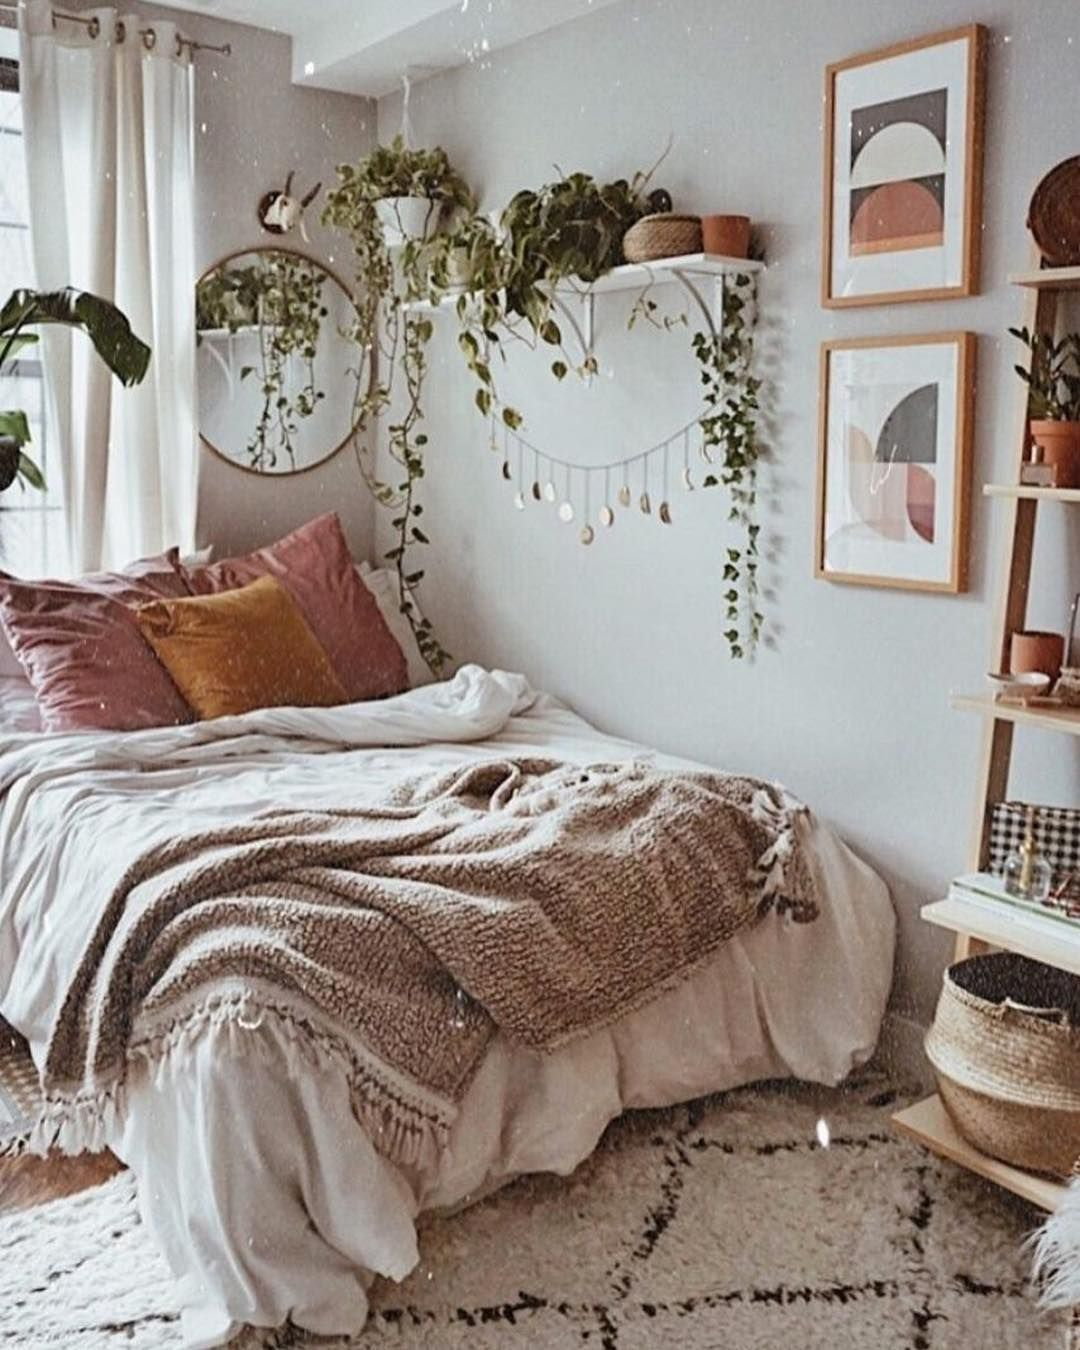 Urban Outfitters Home On Instagram Jnaydaily S Bedroom And Fujifilm Instax Northame Ideoita Makuuhuoneeseen Sisustus Makuuhuone Huoneen Sisustus